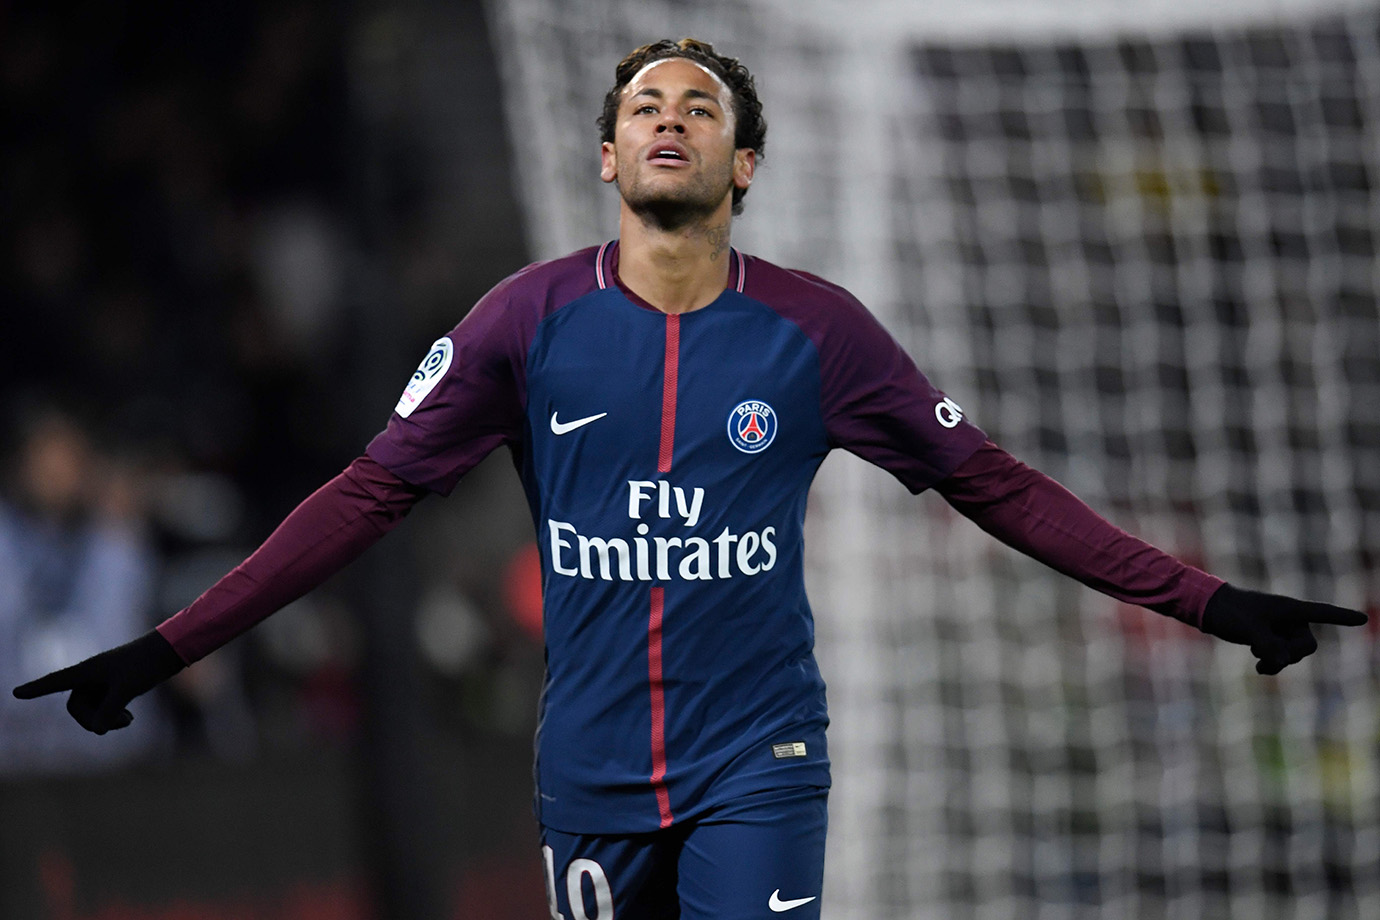 Neymar nails hat-trick as PSG spread Dijon thin